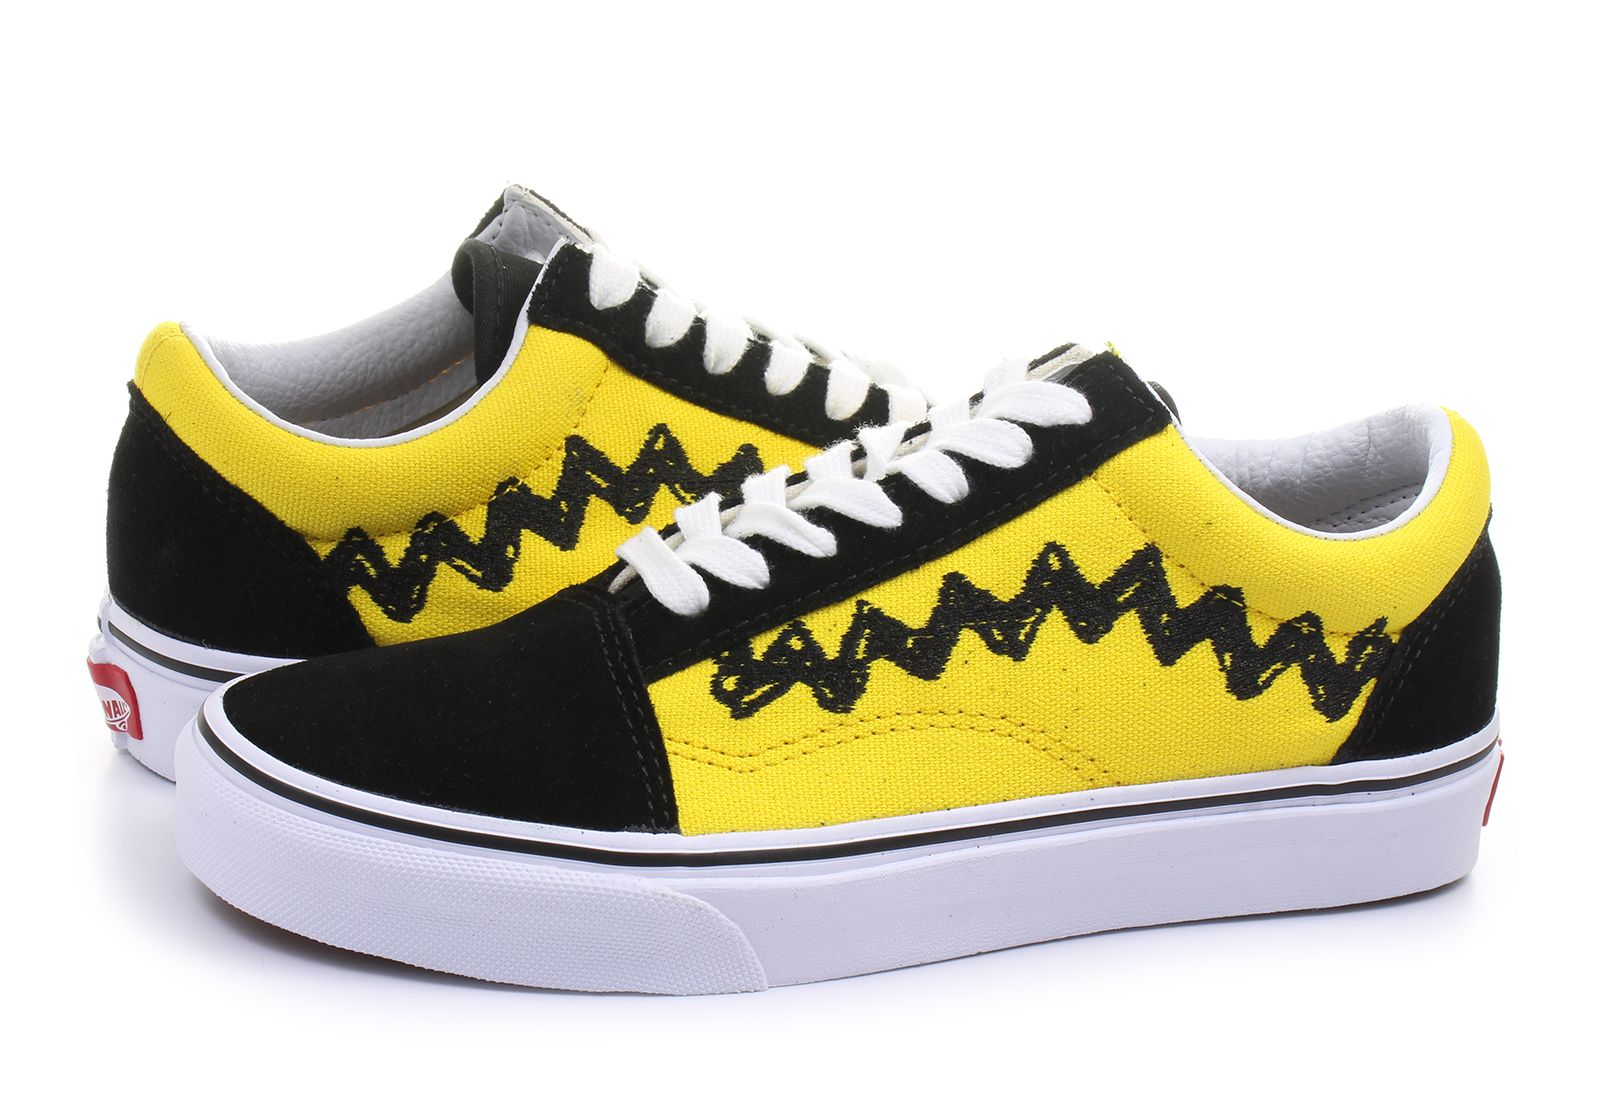 Vans Sneakers Old Skool Va38g1ohj Online Shop For